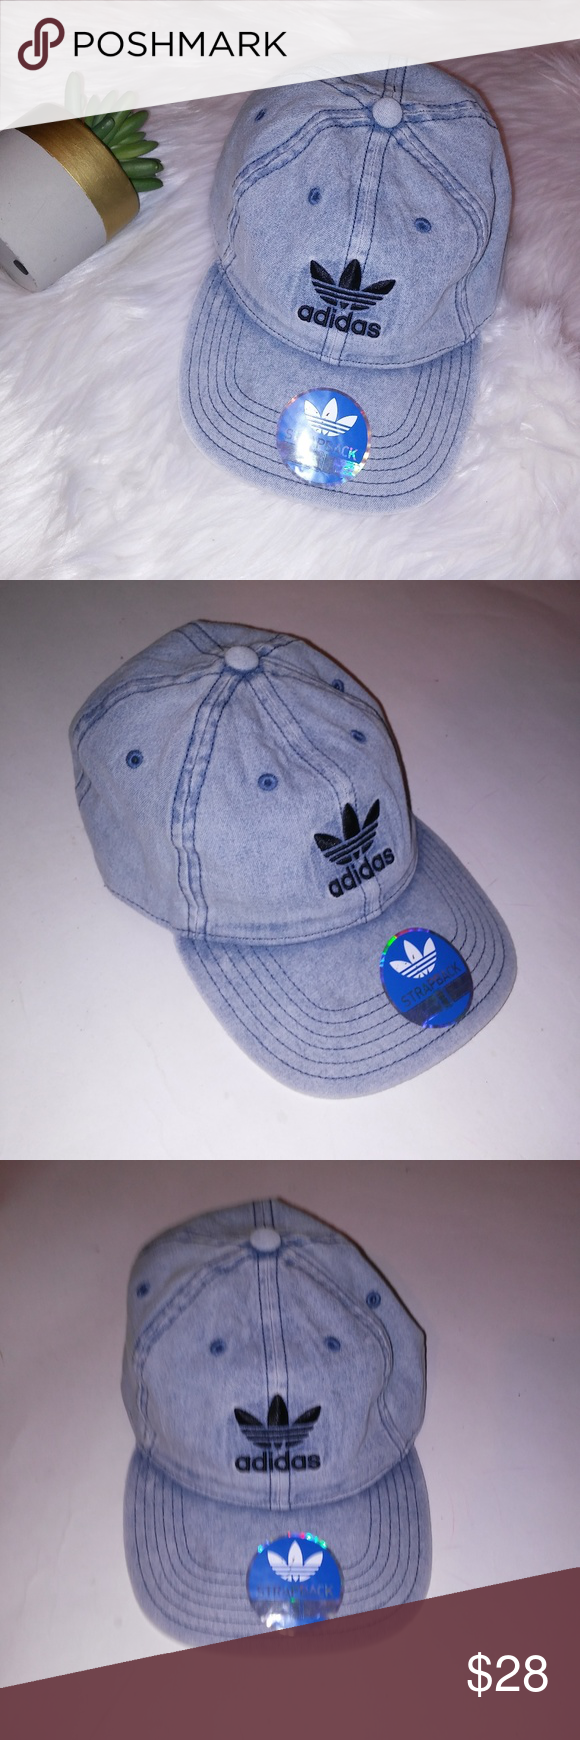 4014bf7799f24 Adidas Originals Hat Mens Adidas Originals Hat Mens Cap Washed Blue Denim  Trefoil Adjustable Fit Strapback